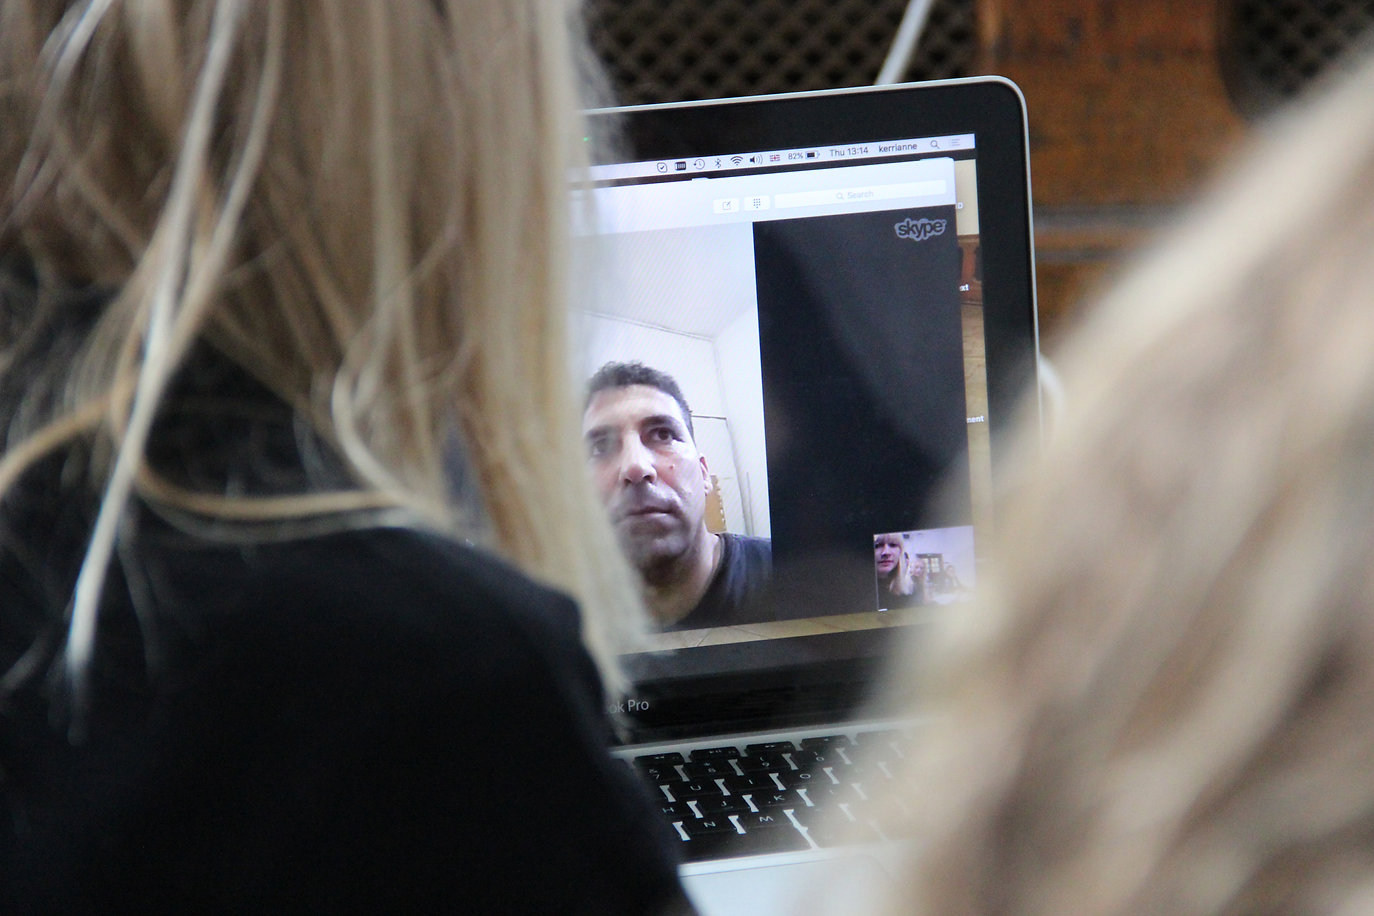 Image Description: Two women skyping a man on a laptop.